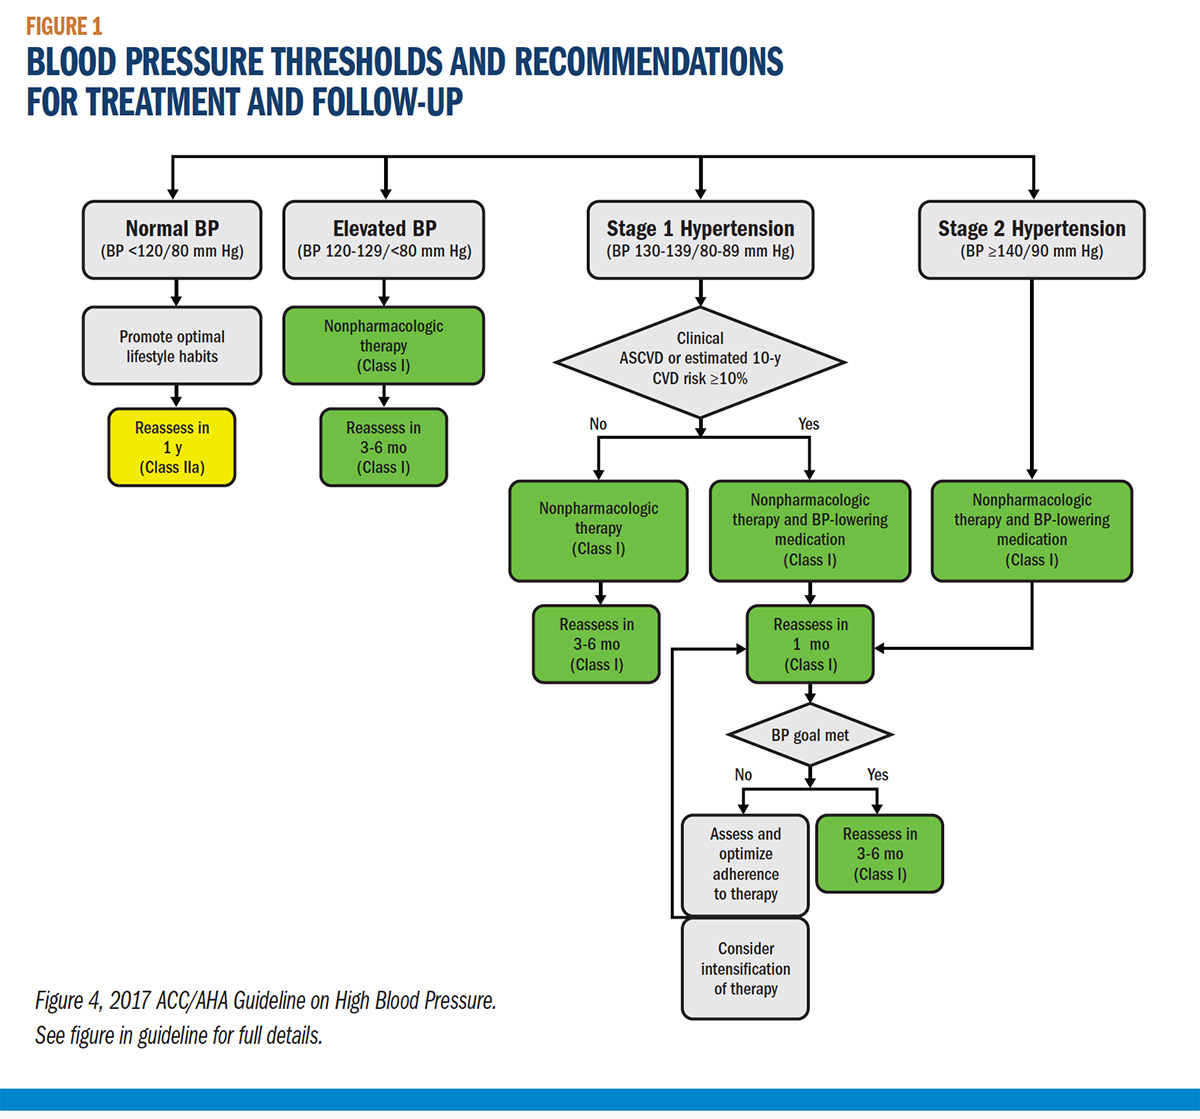 Cover story the 2017 high blood pressure guideline risk figure 1 blood pressure thresholds and recommendations for treatment and follow up nvjuhfo Gallery